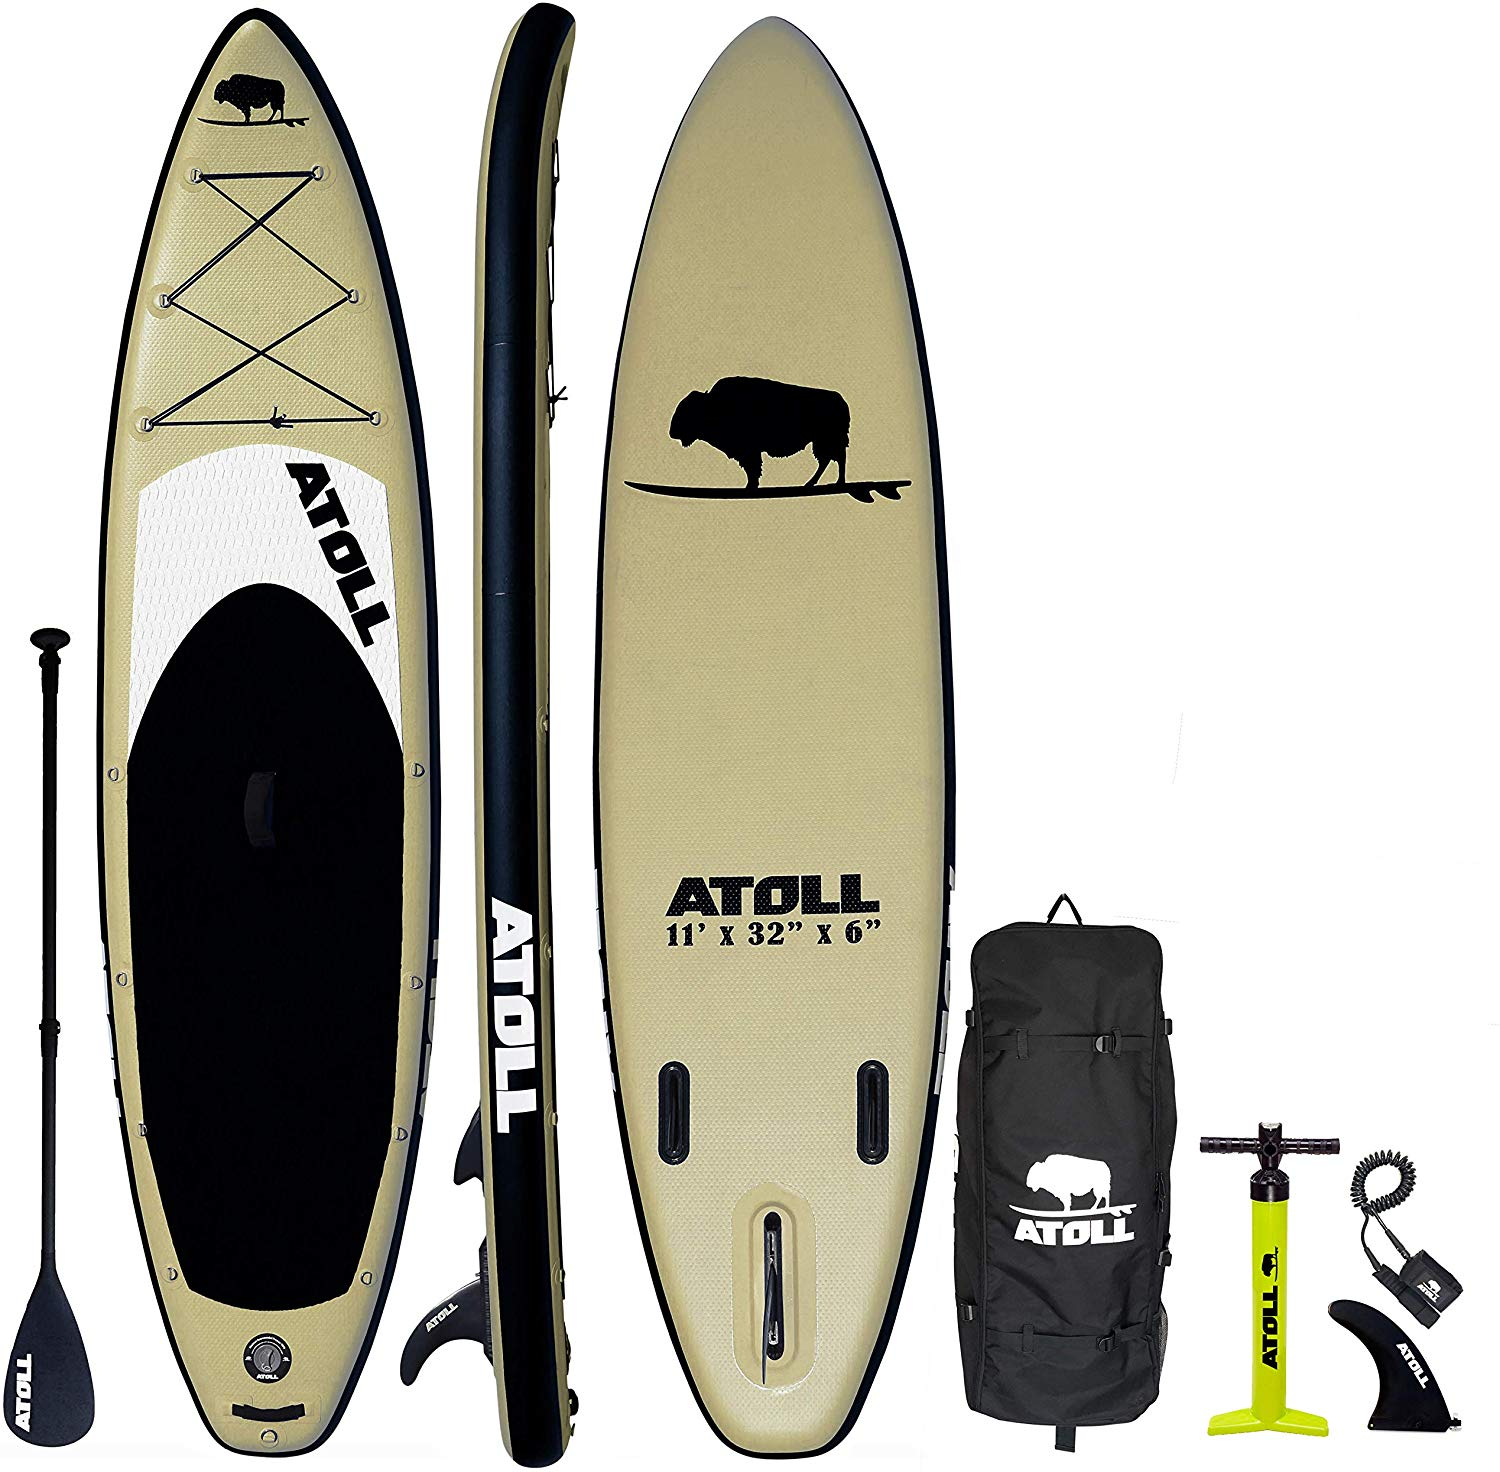 Desert Sand Inflatable Stand Up Paddle Board